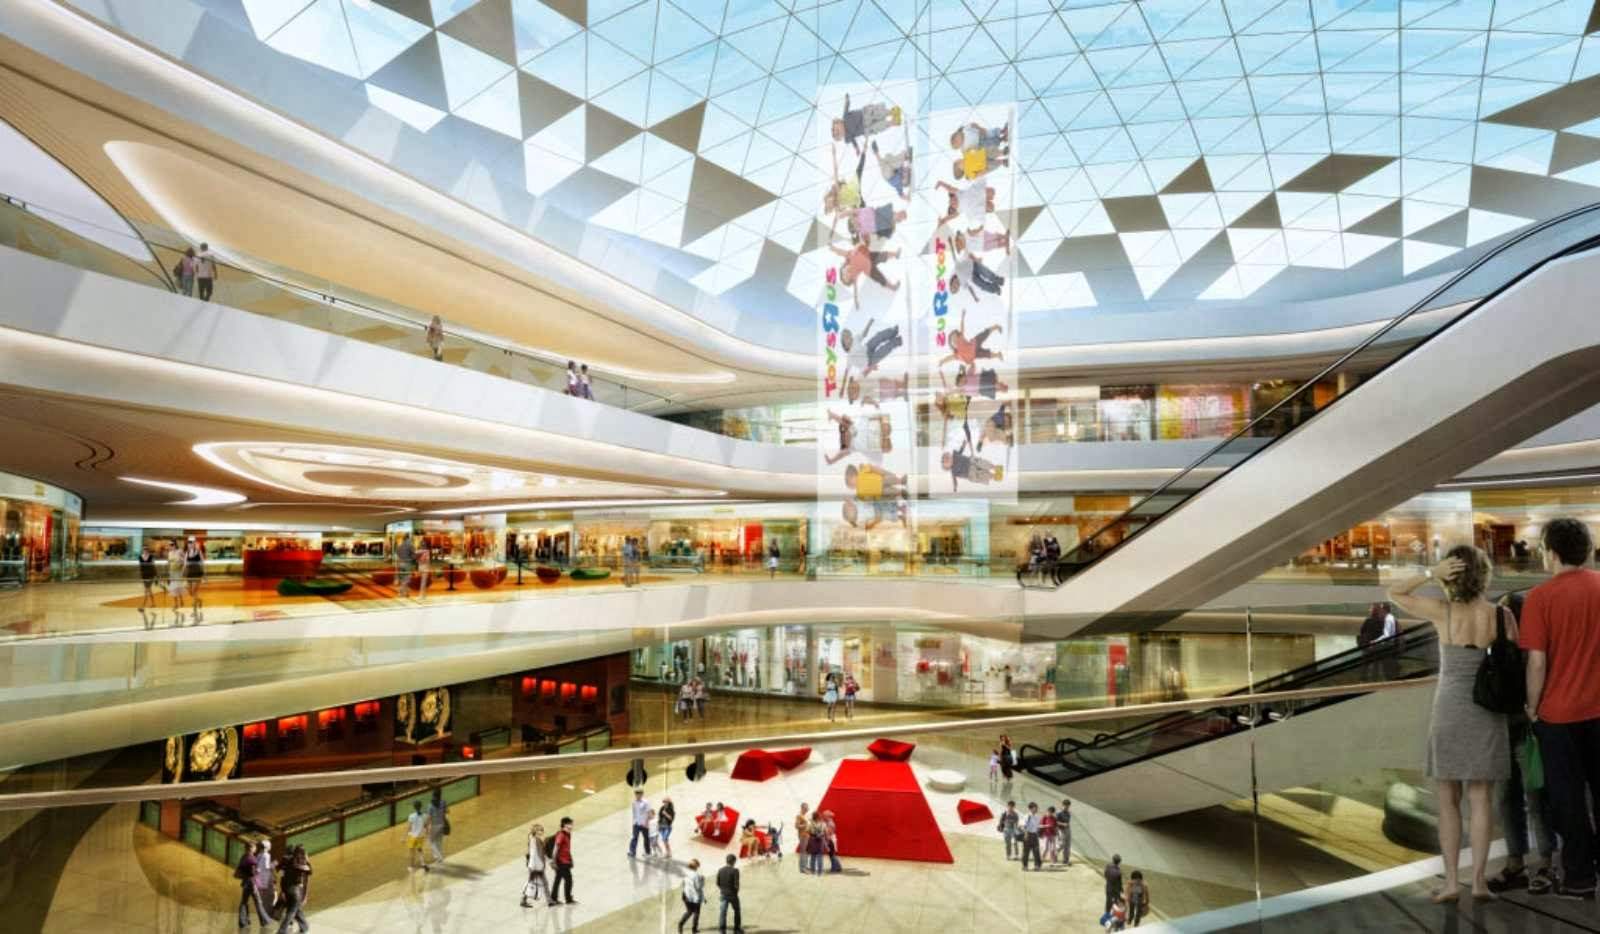 HAITANG BAY INTERNATIONAL SHOPPING CENTRE BY HASSELL | A AShassell town